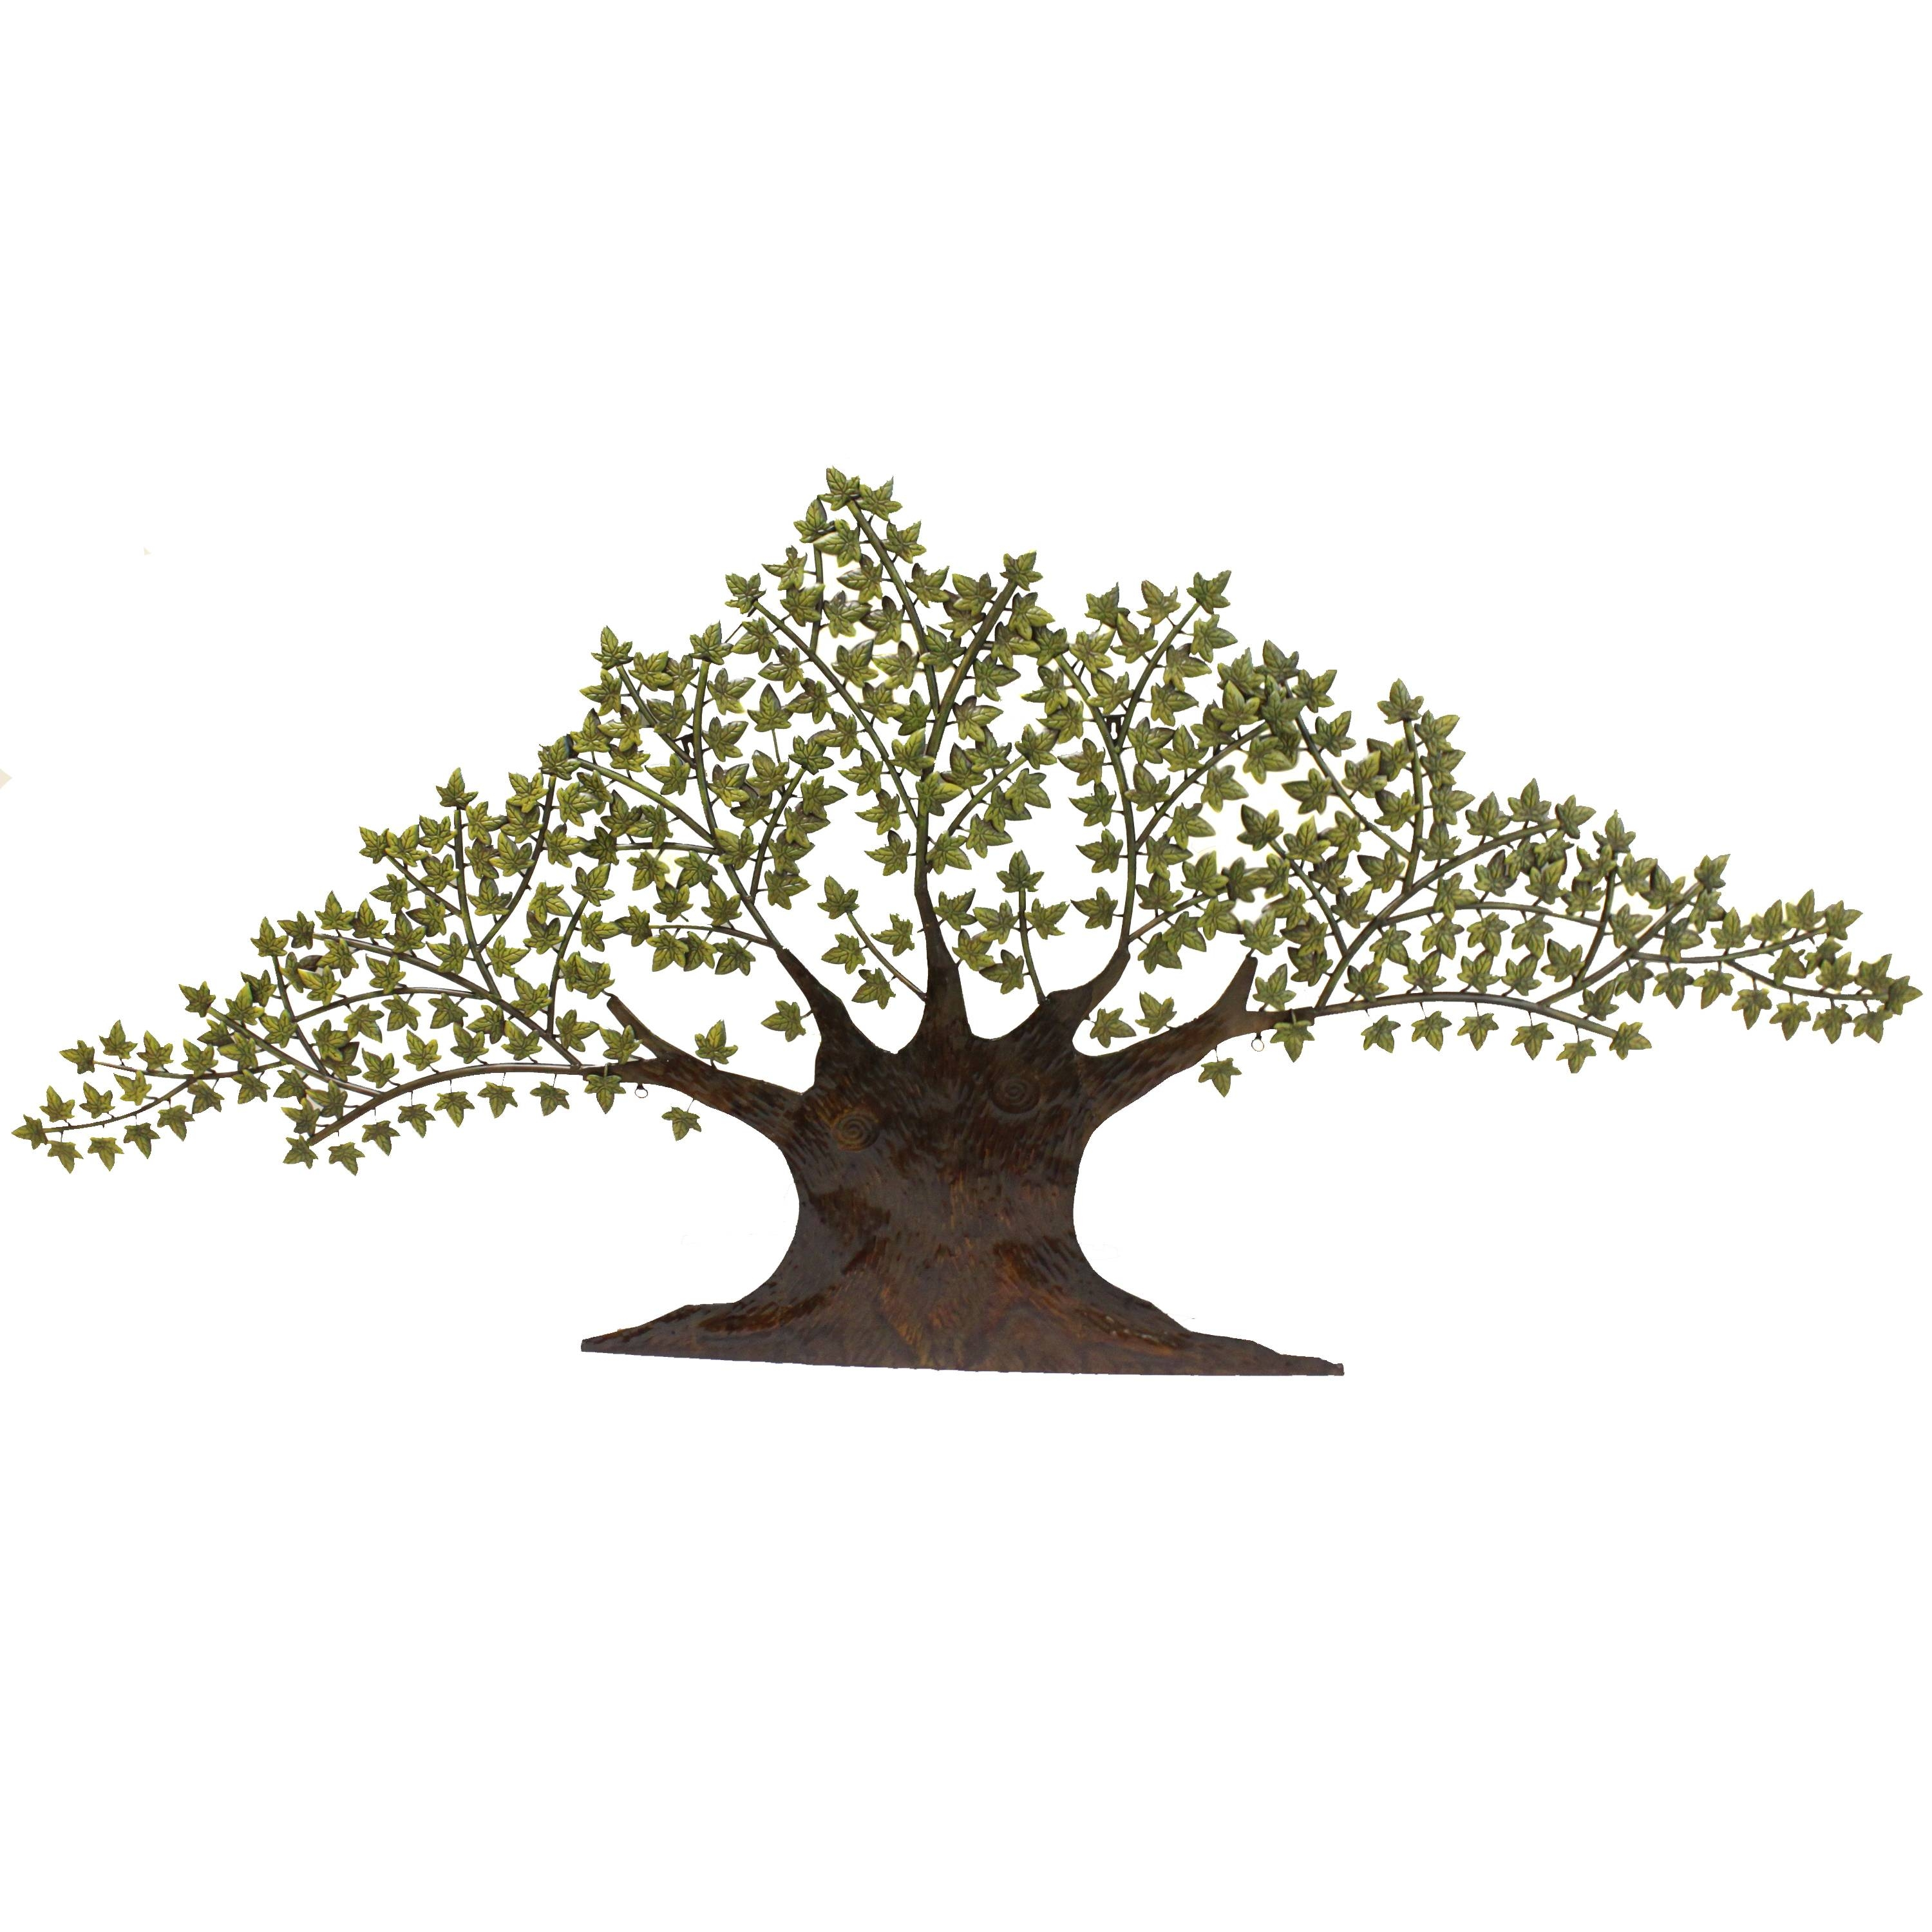 Grotesque Tree Of Life Metal Wall Art Decor Sculpture With Green With Most Recent Metal Wall Art Trees And Leaves (View 7 of 20)